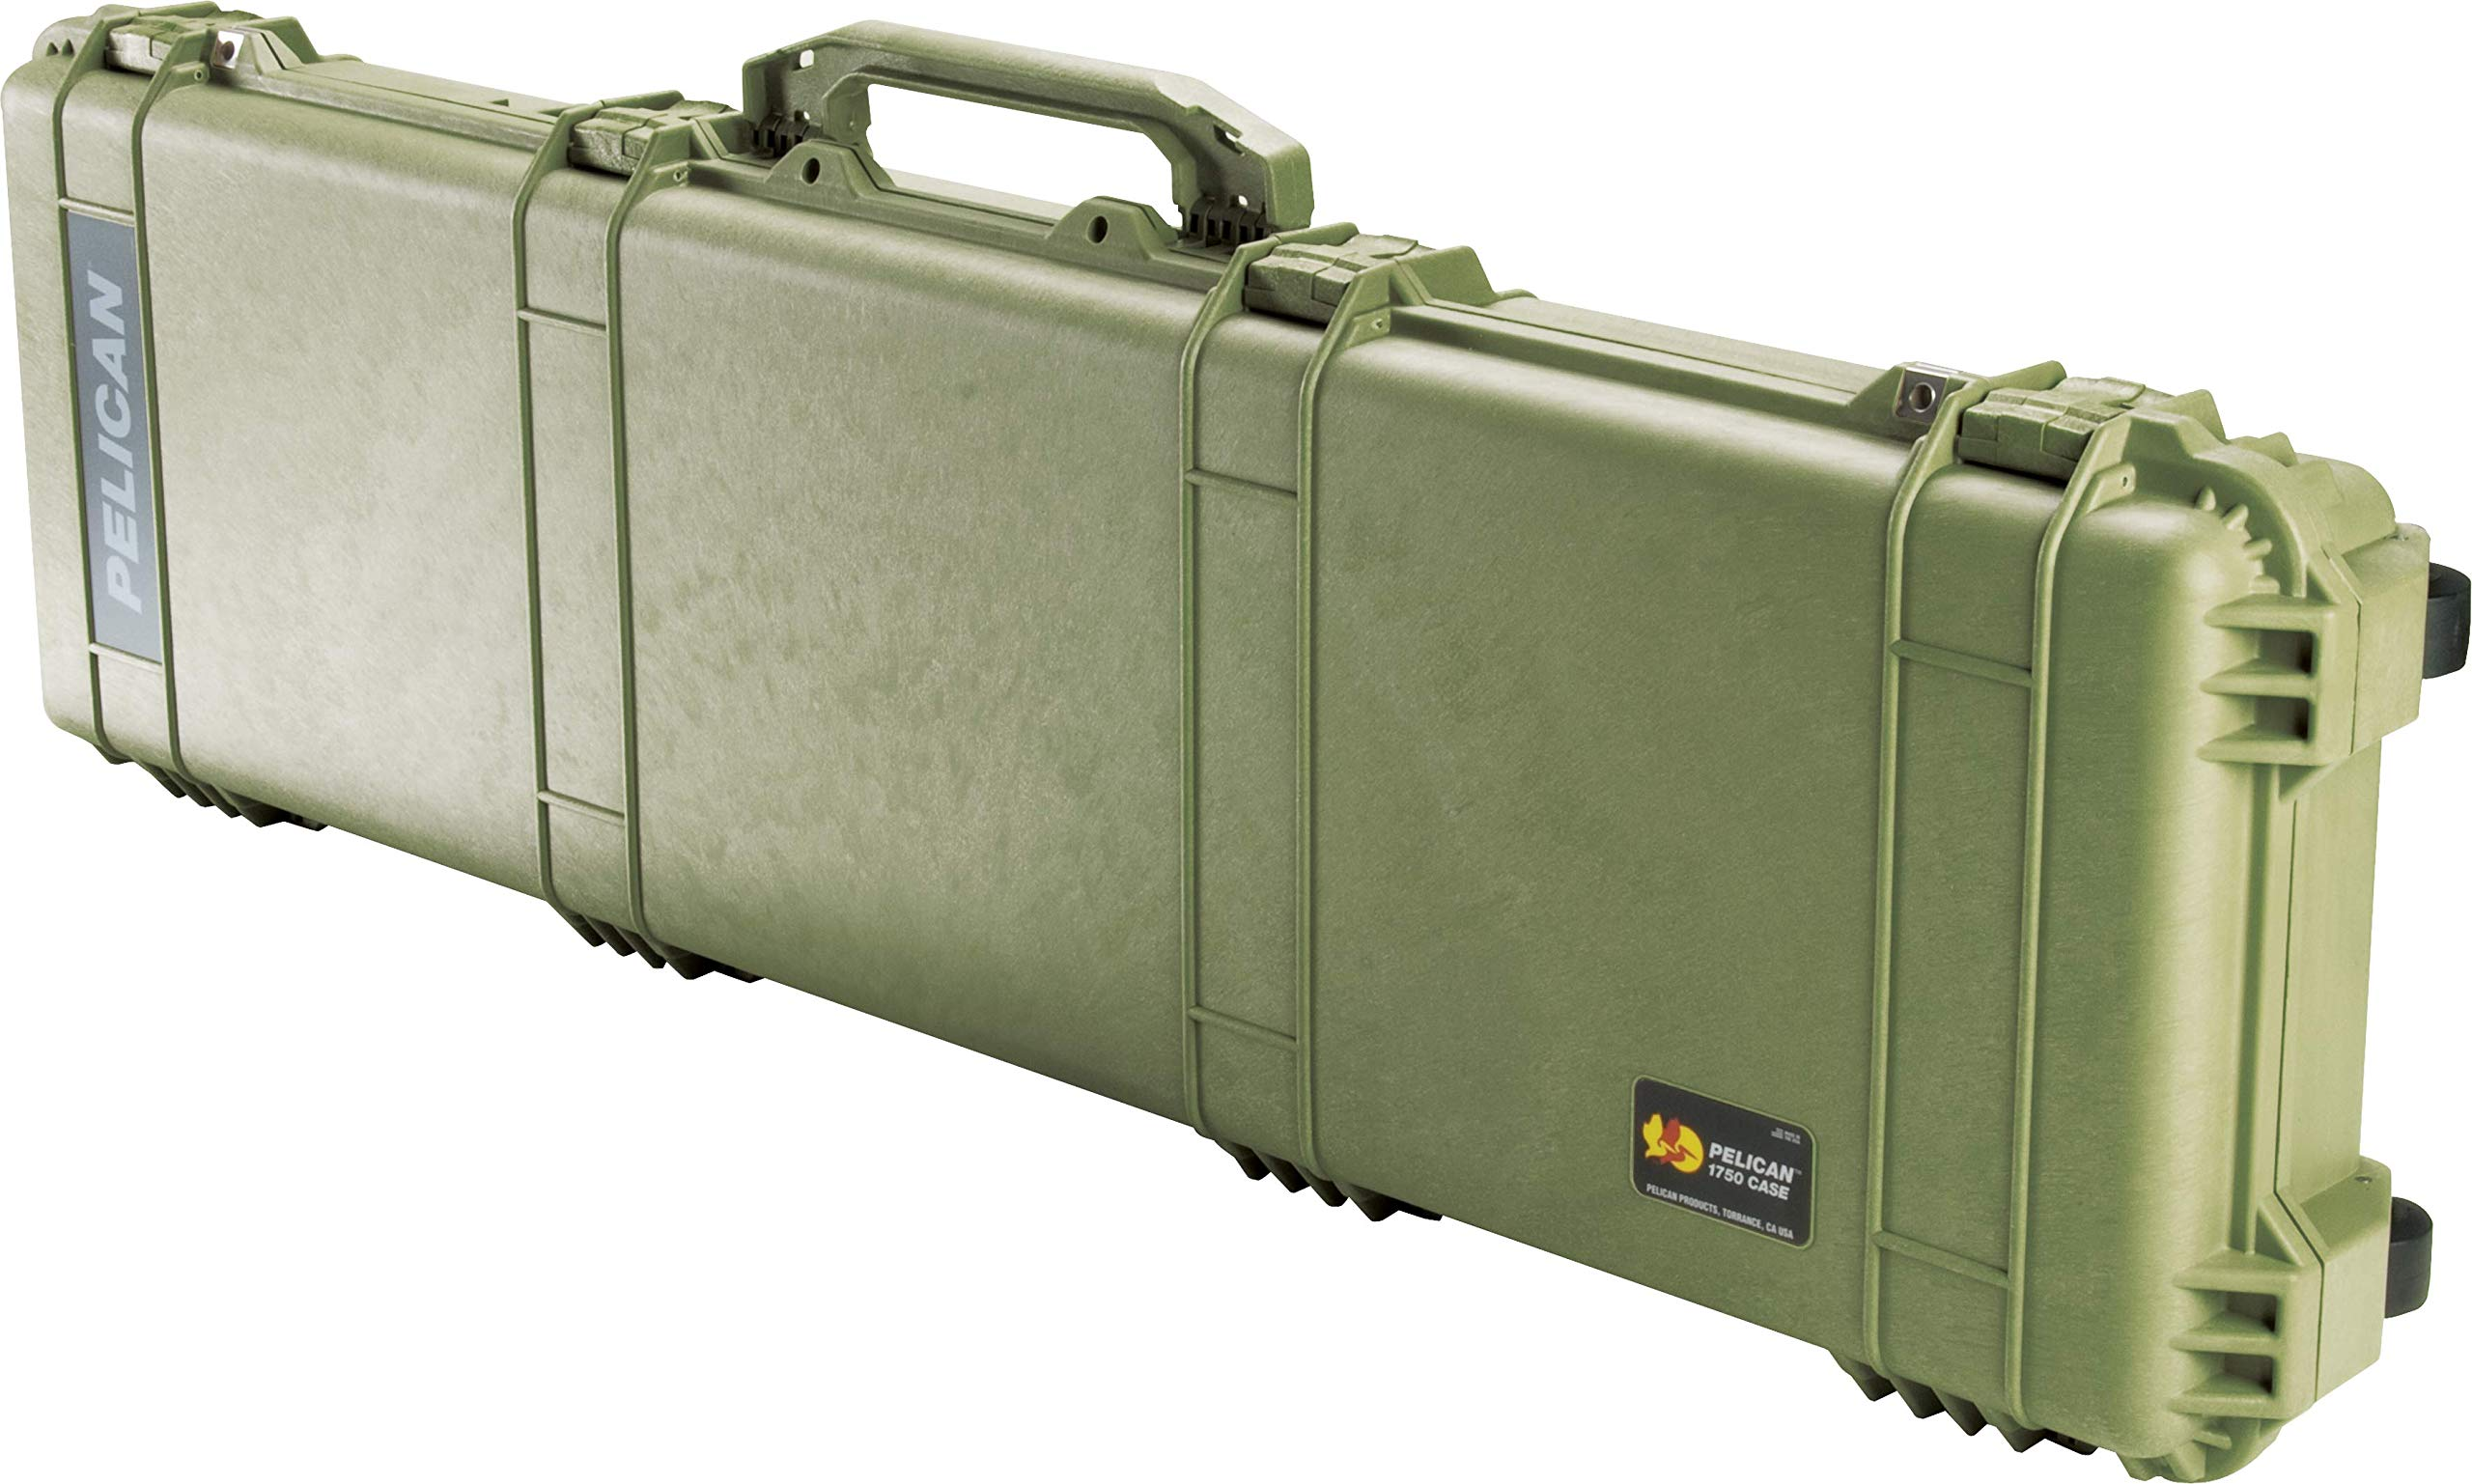 Pelican 1750 Rifle Case With Foam (OD Green) by Pelican